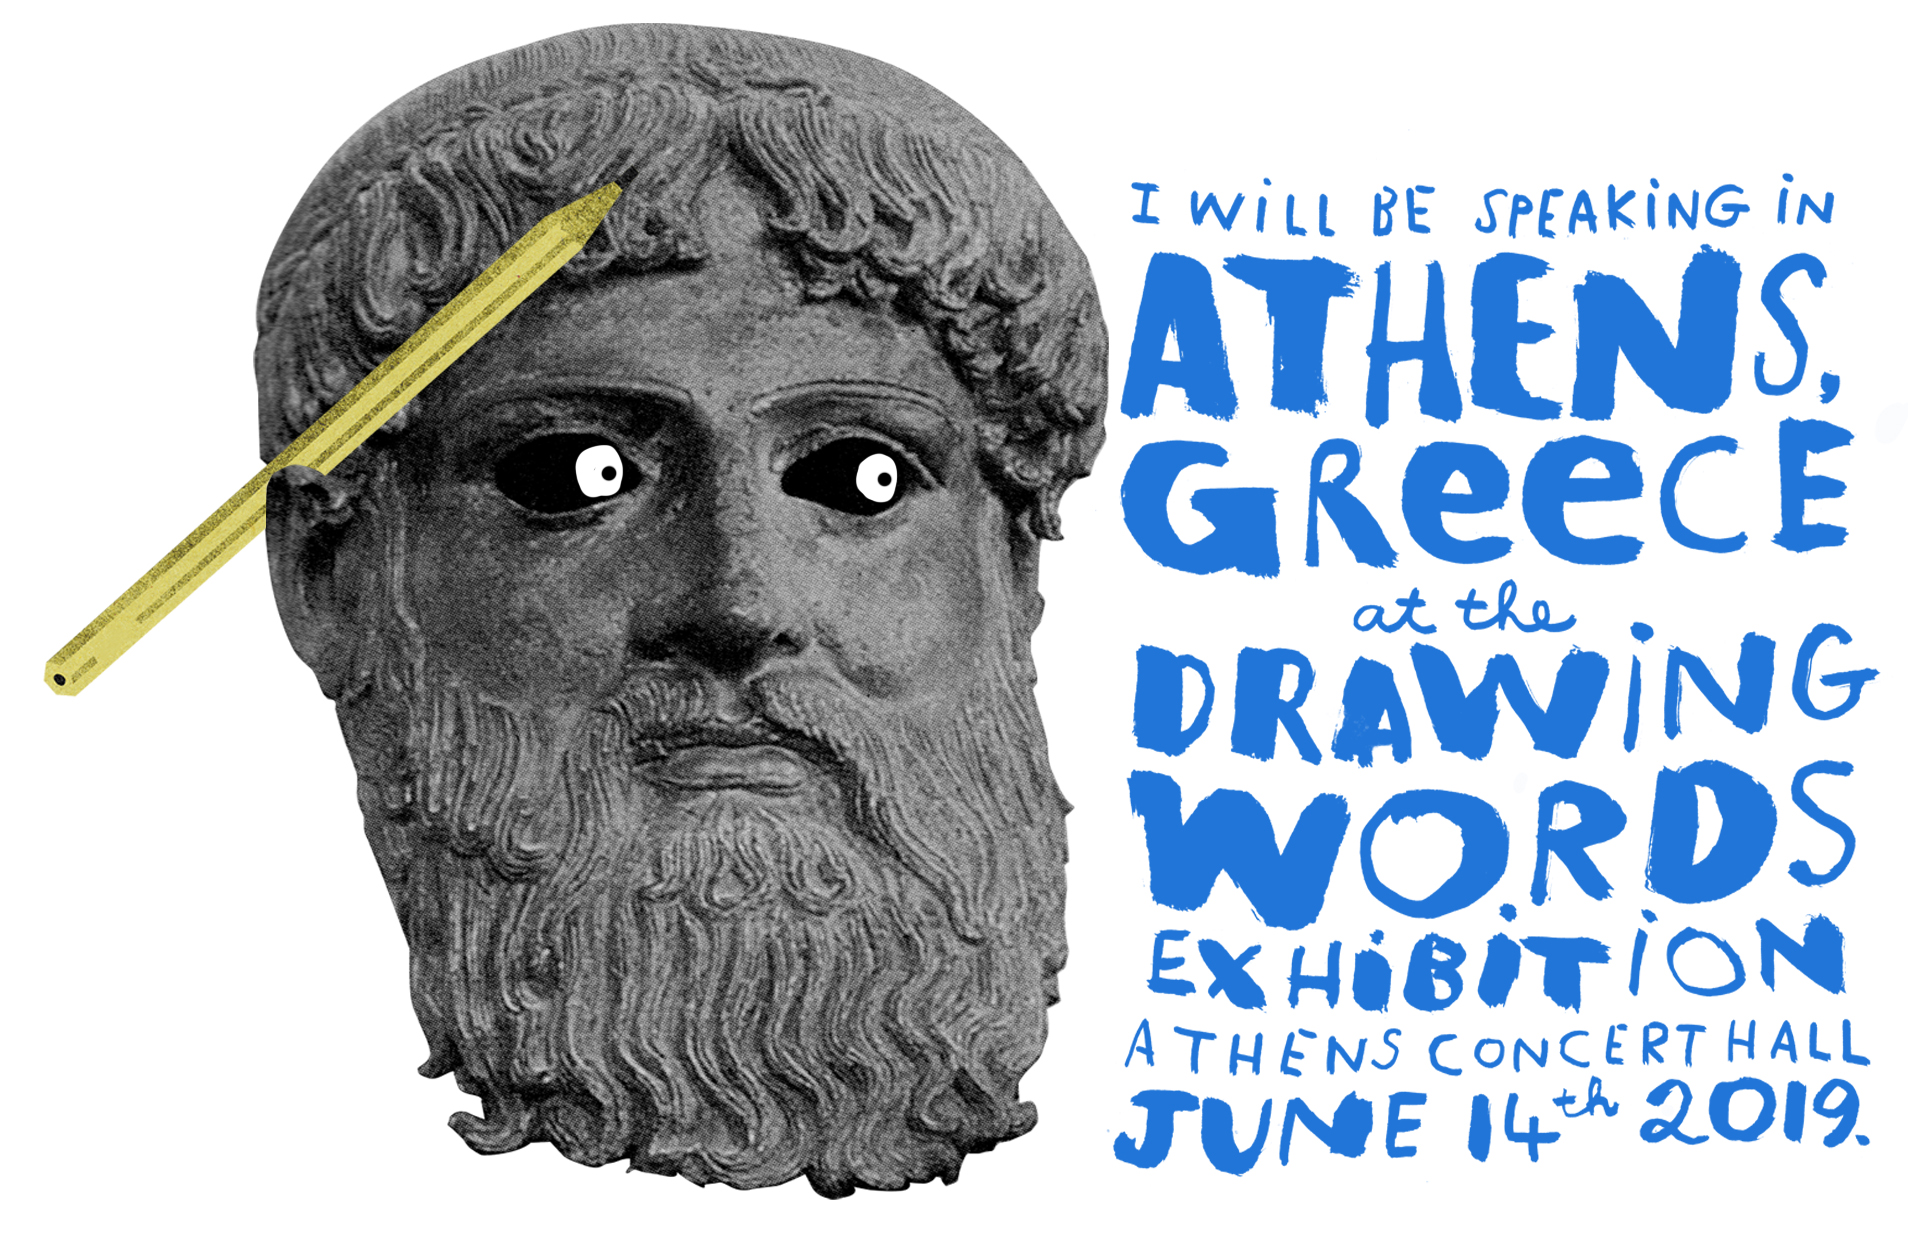 drawing words athens greece david mackintosh